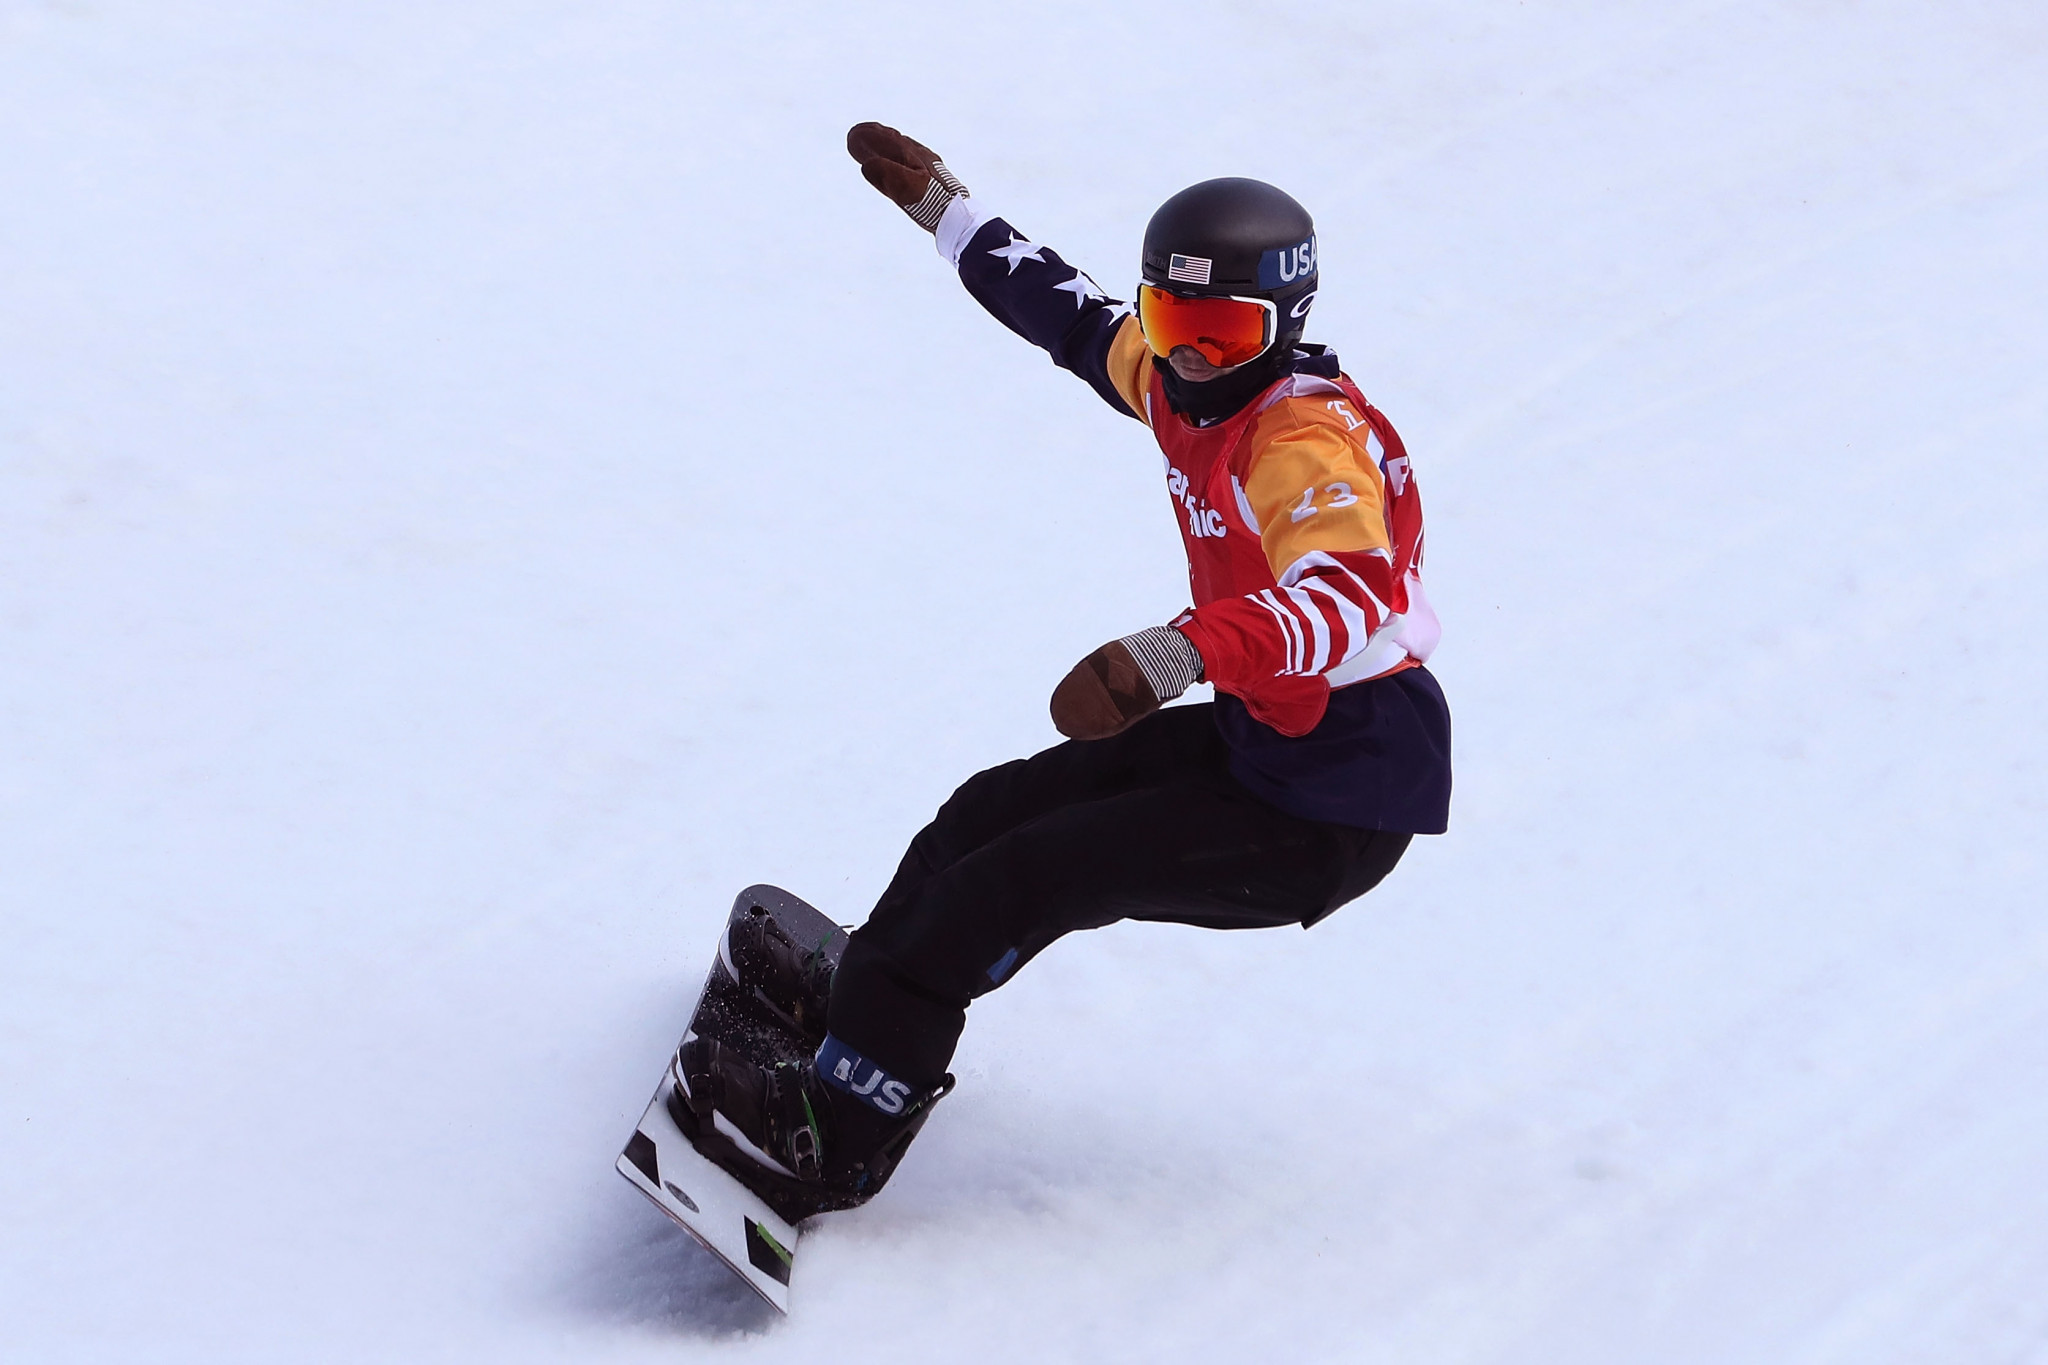 United States claim two golds at World Para Snowboard World Cup Finals